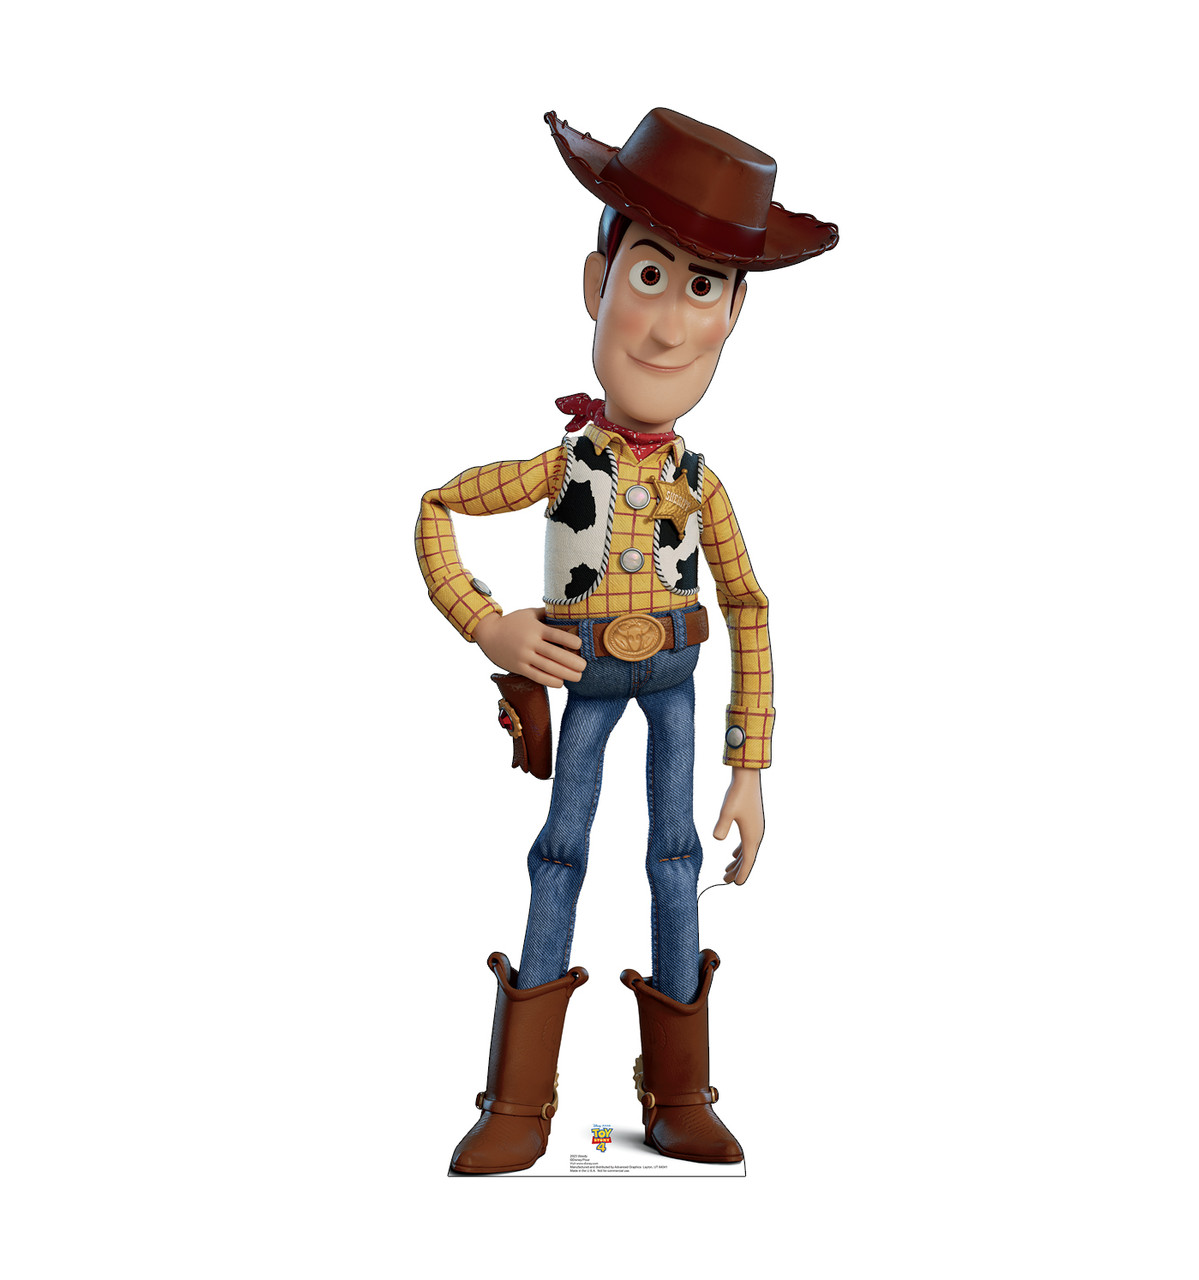 Woody - Life Size Toy Story 4 Cardboard Cutout